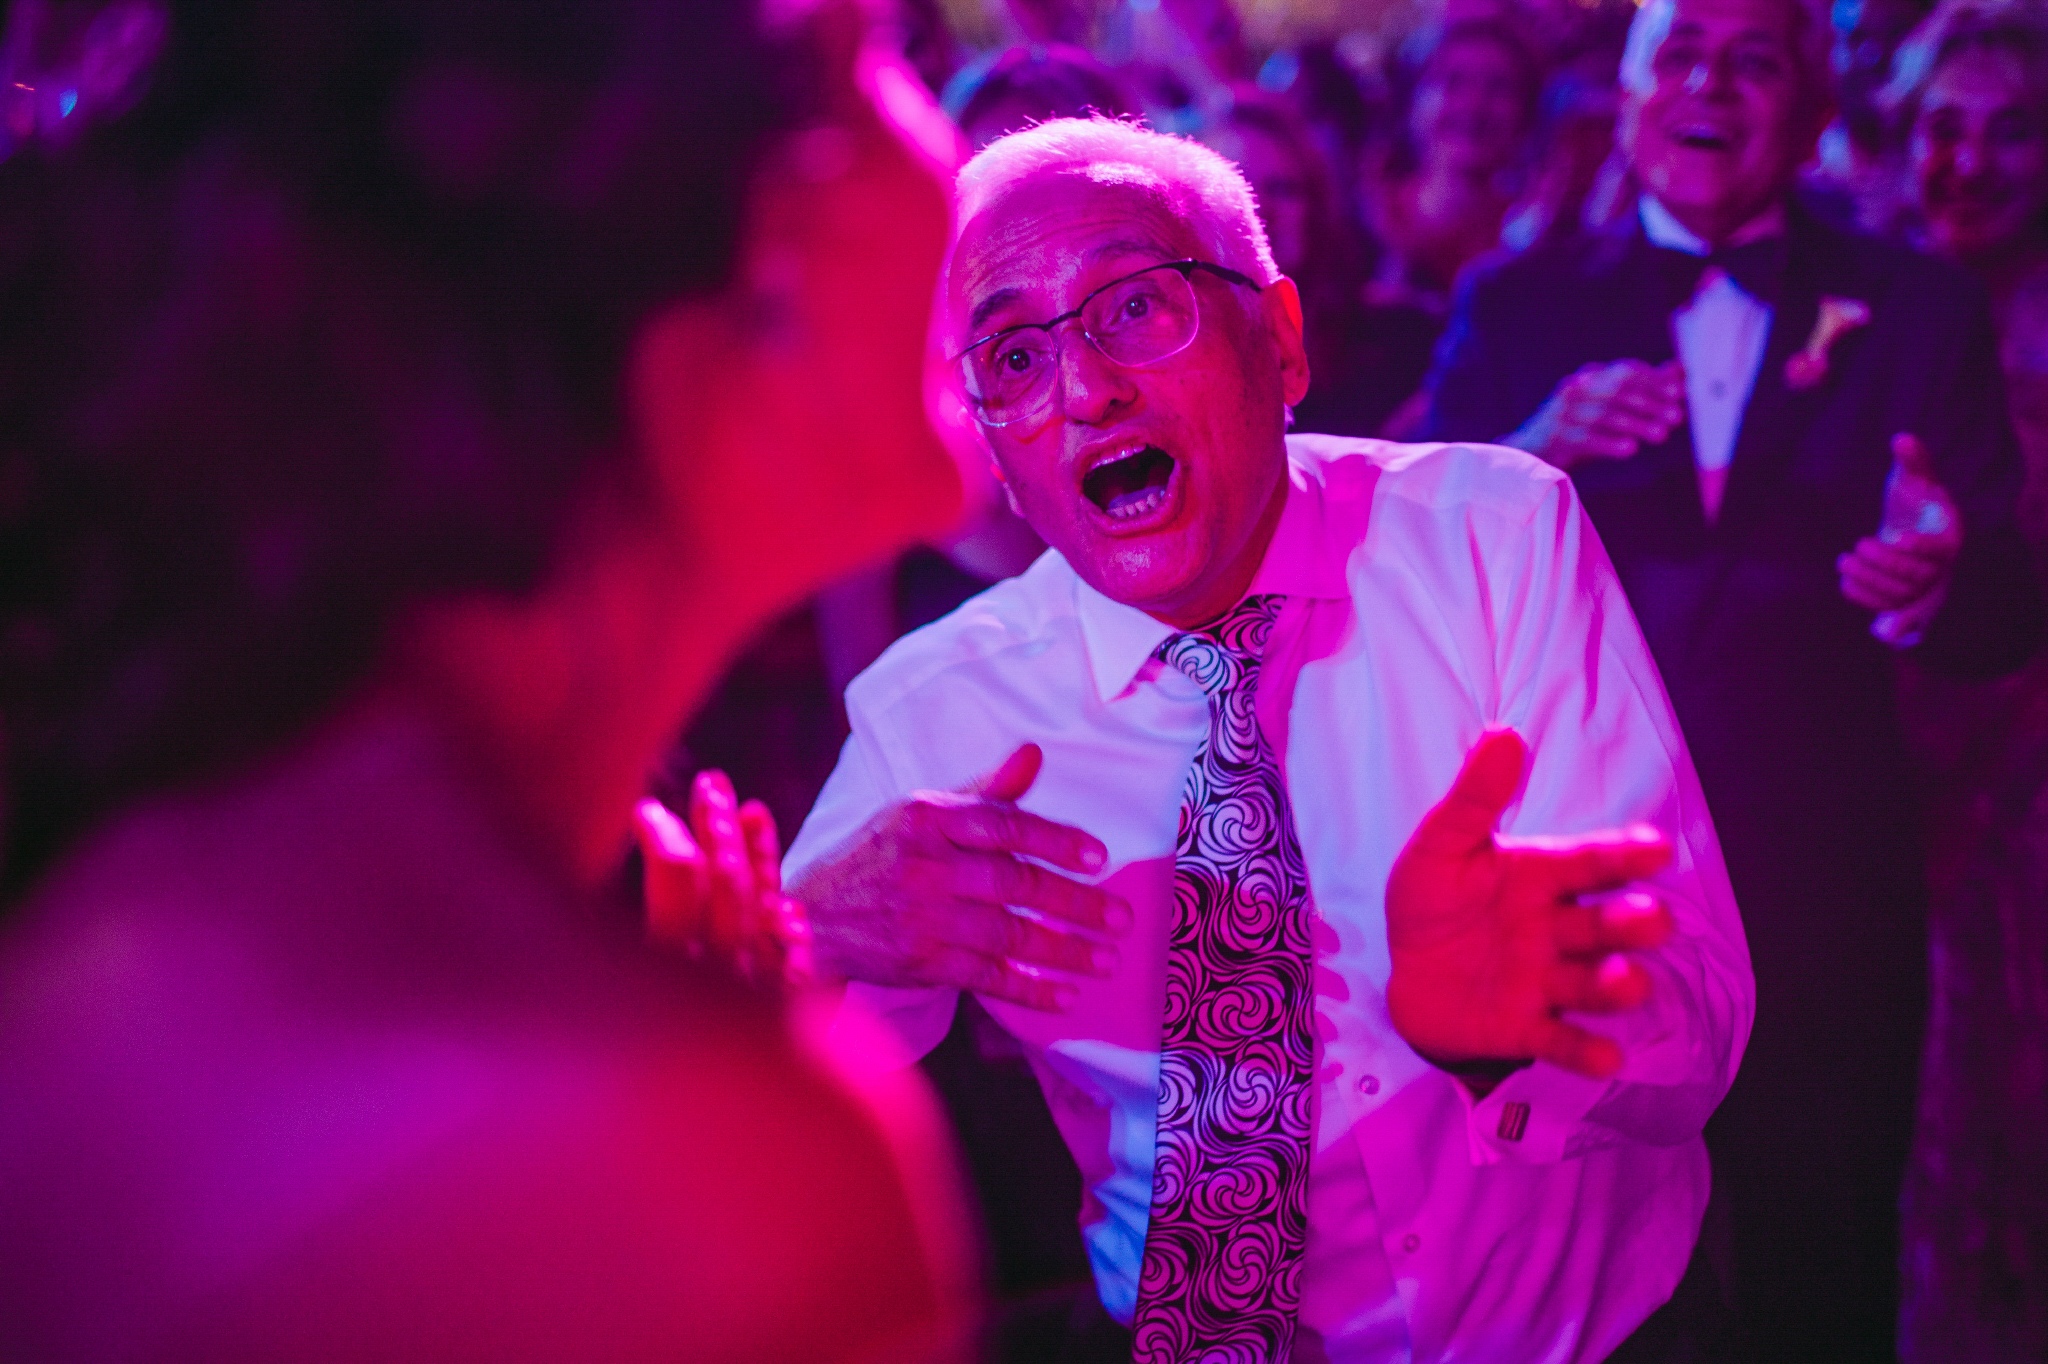 san diego wedding   photographer | old man in white shirt wearing black and white tie dancing in   the middle of a crowd